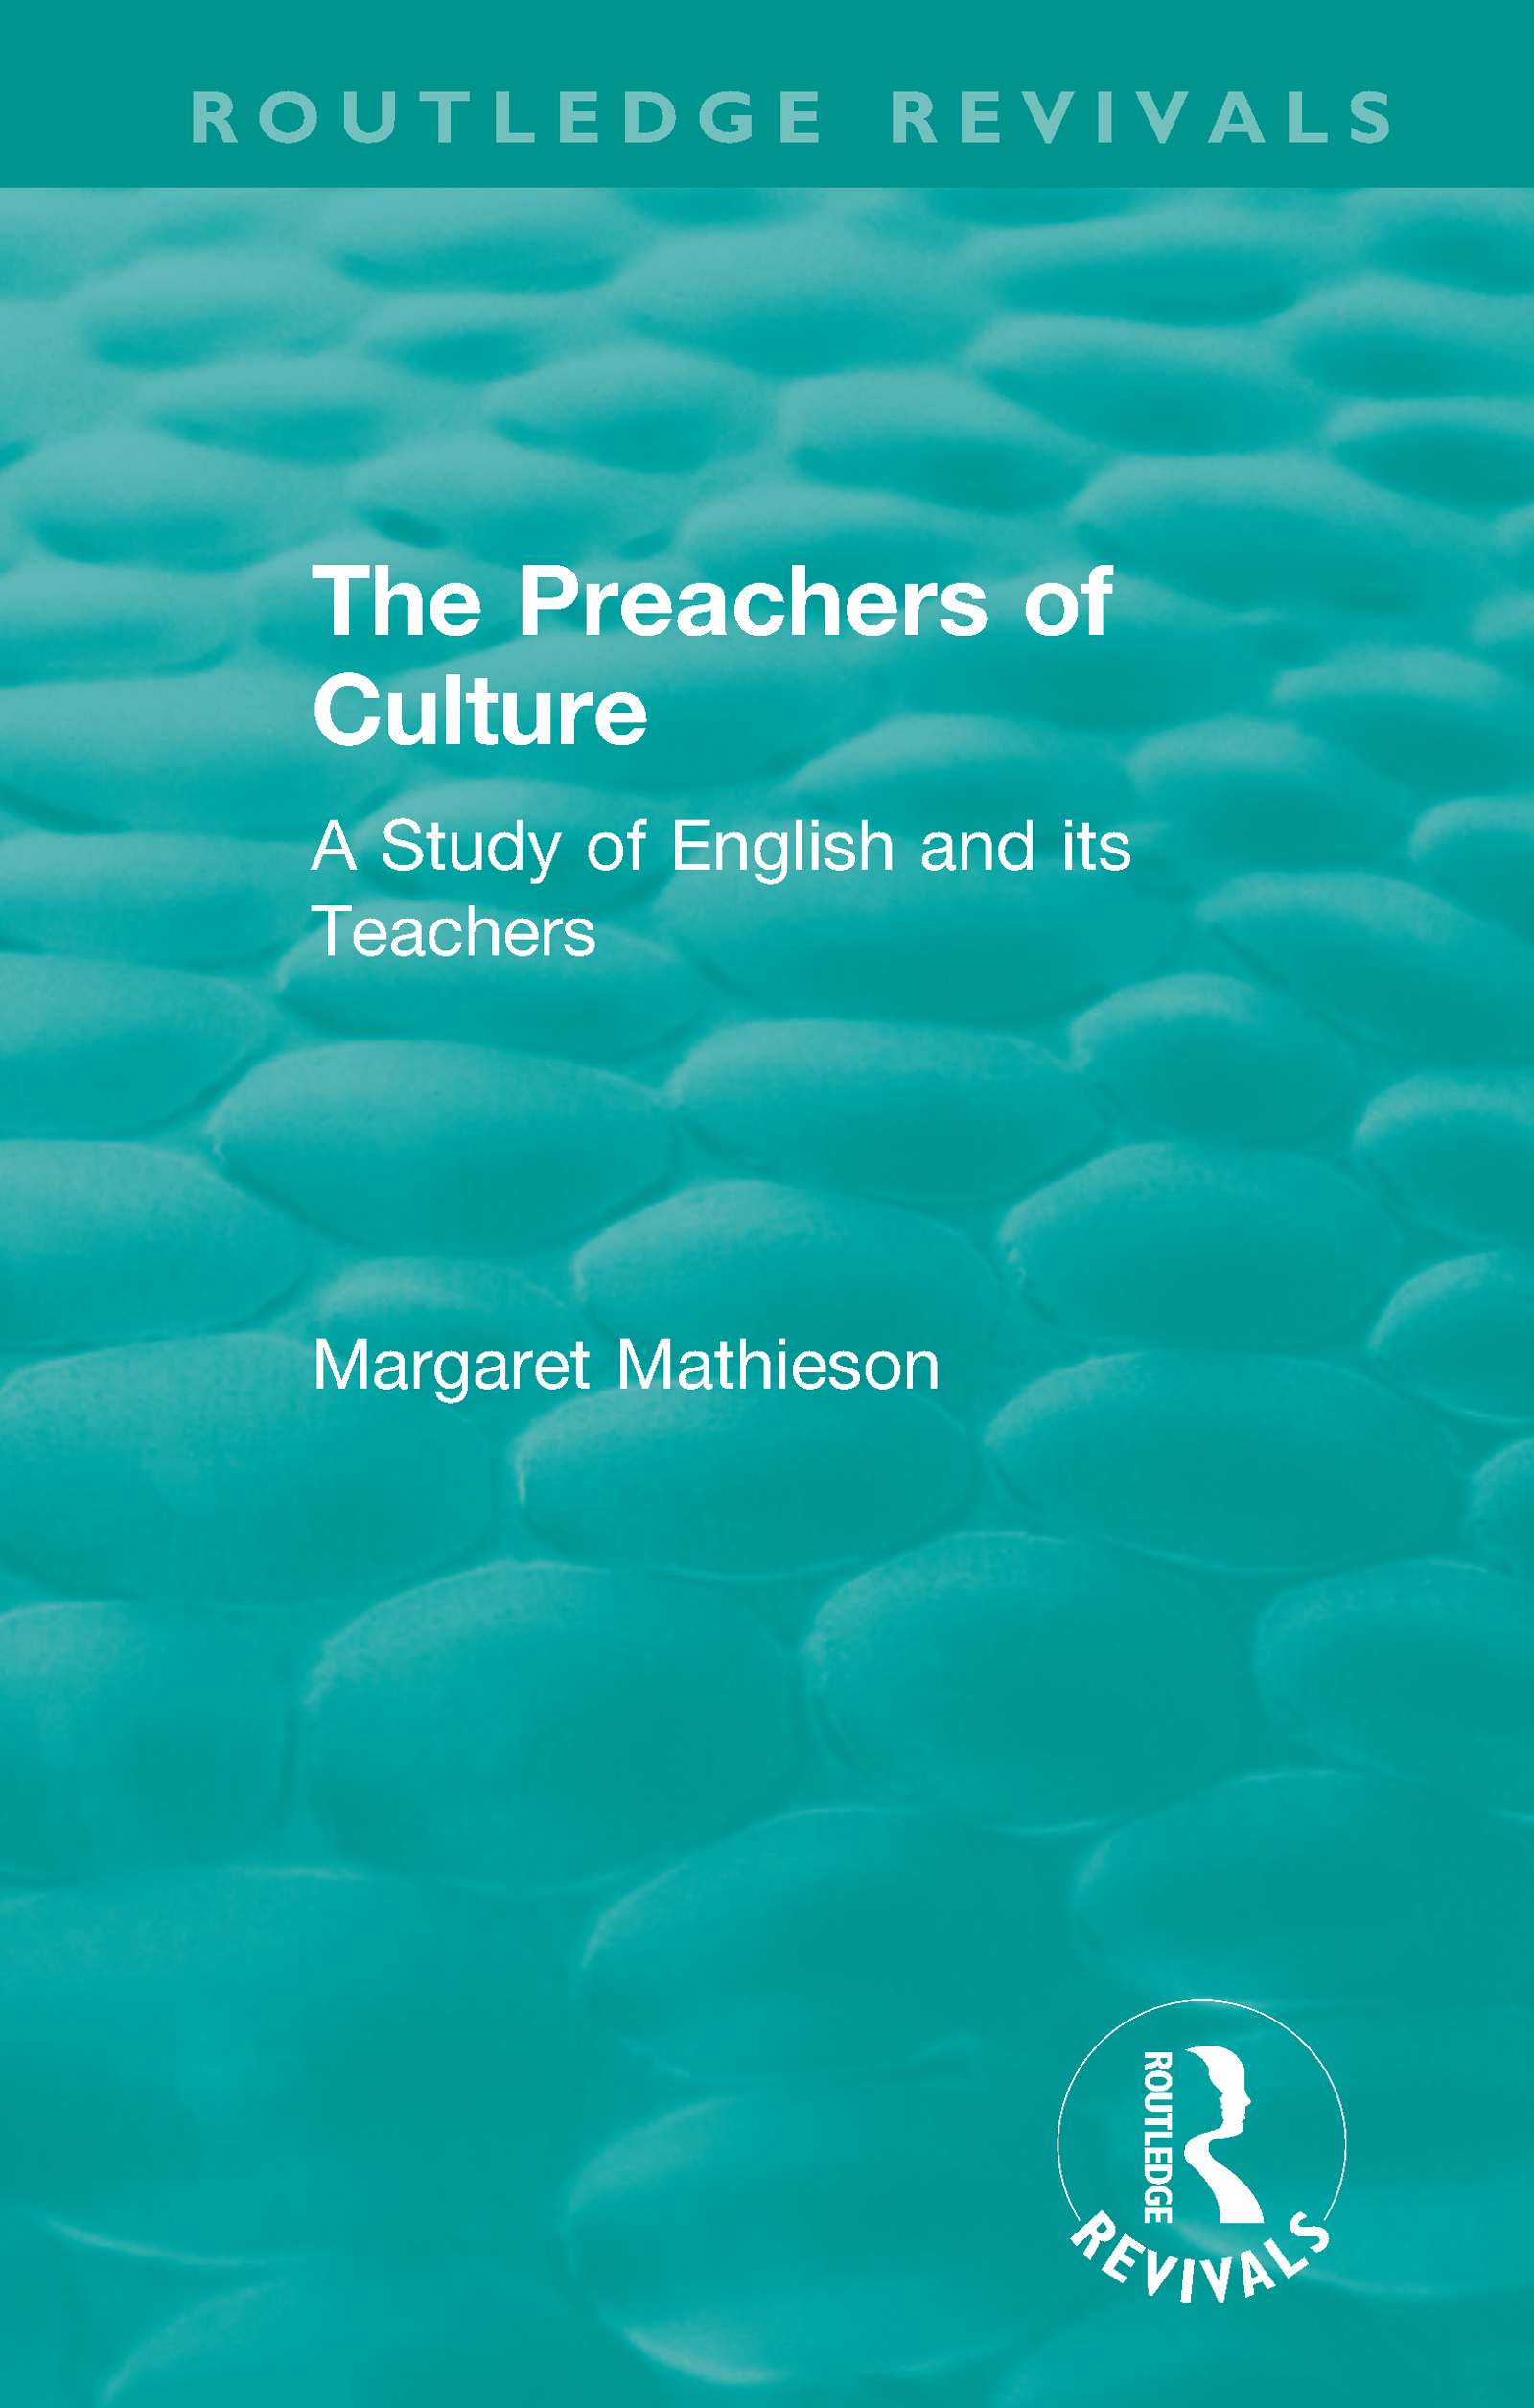 The Preachers of Culture (1975): A Study of English and its Teachers book cover